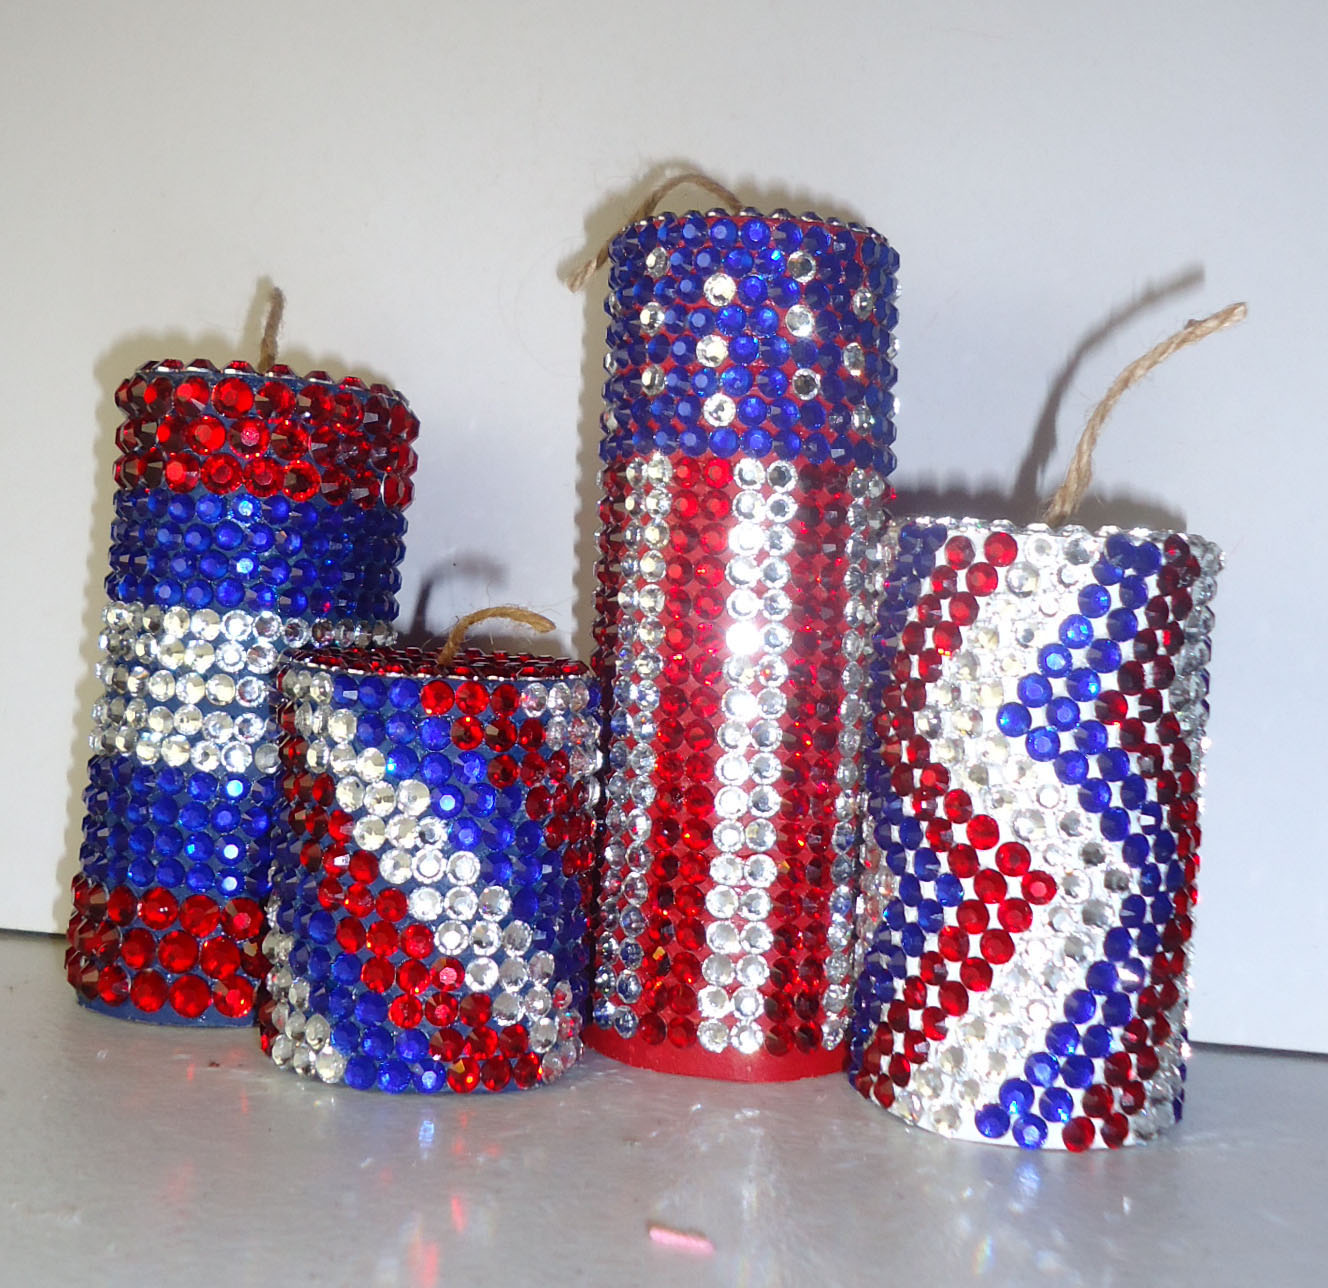 Frugal Home Design: Easy Inexpensive 4th Of July Decor